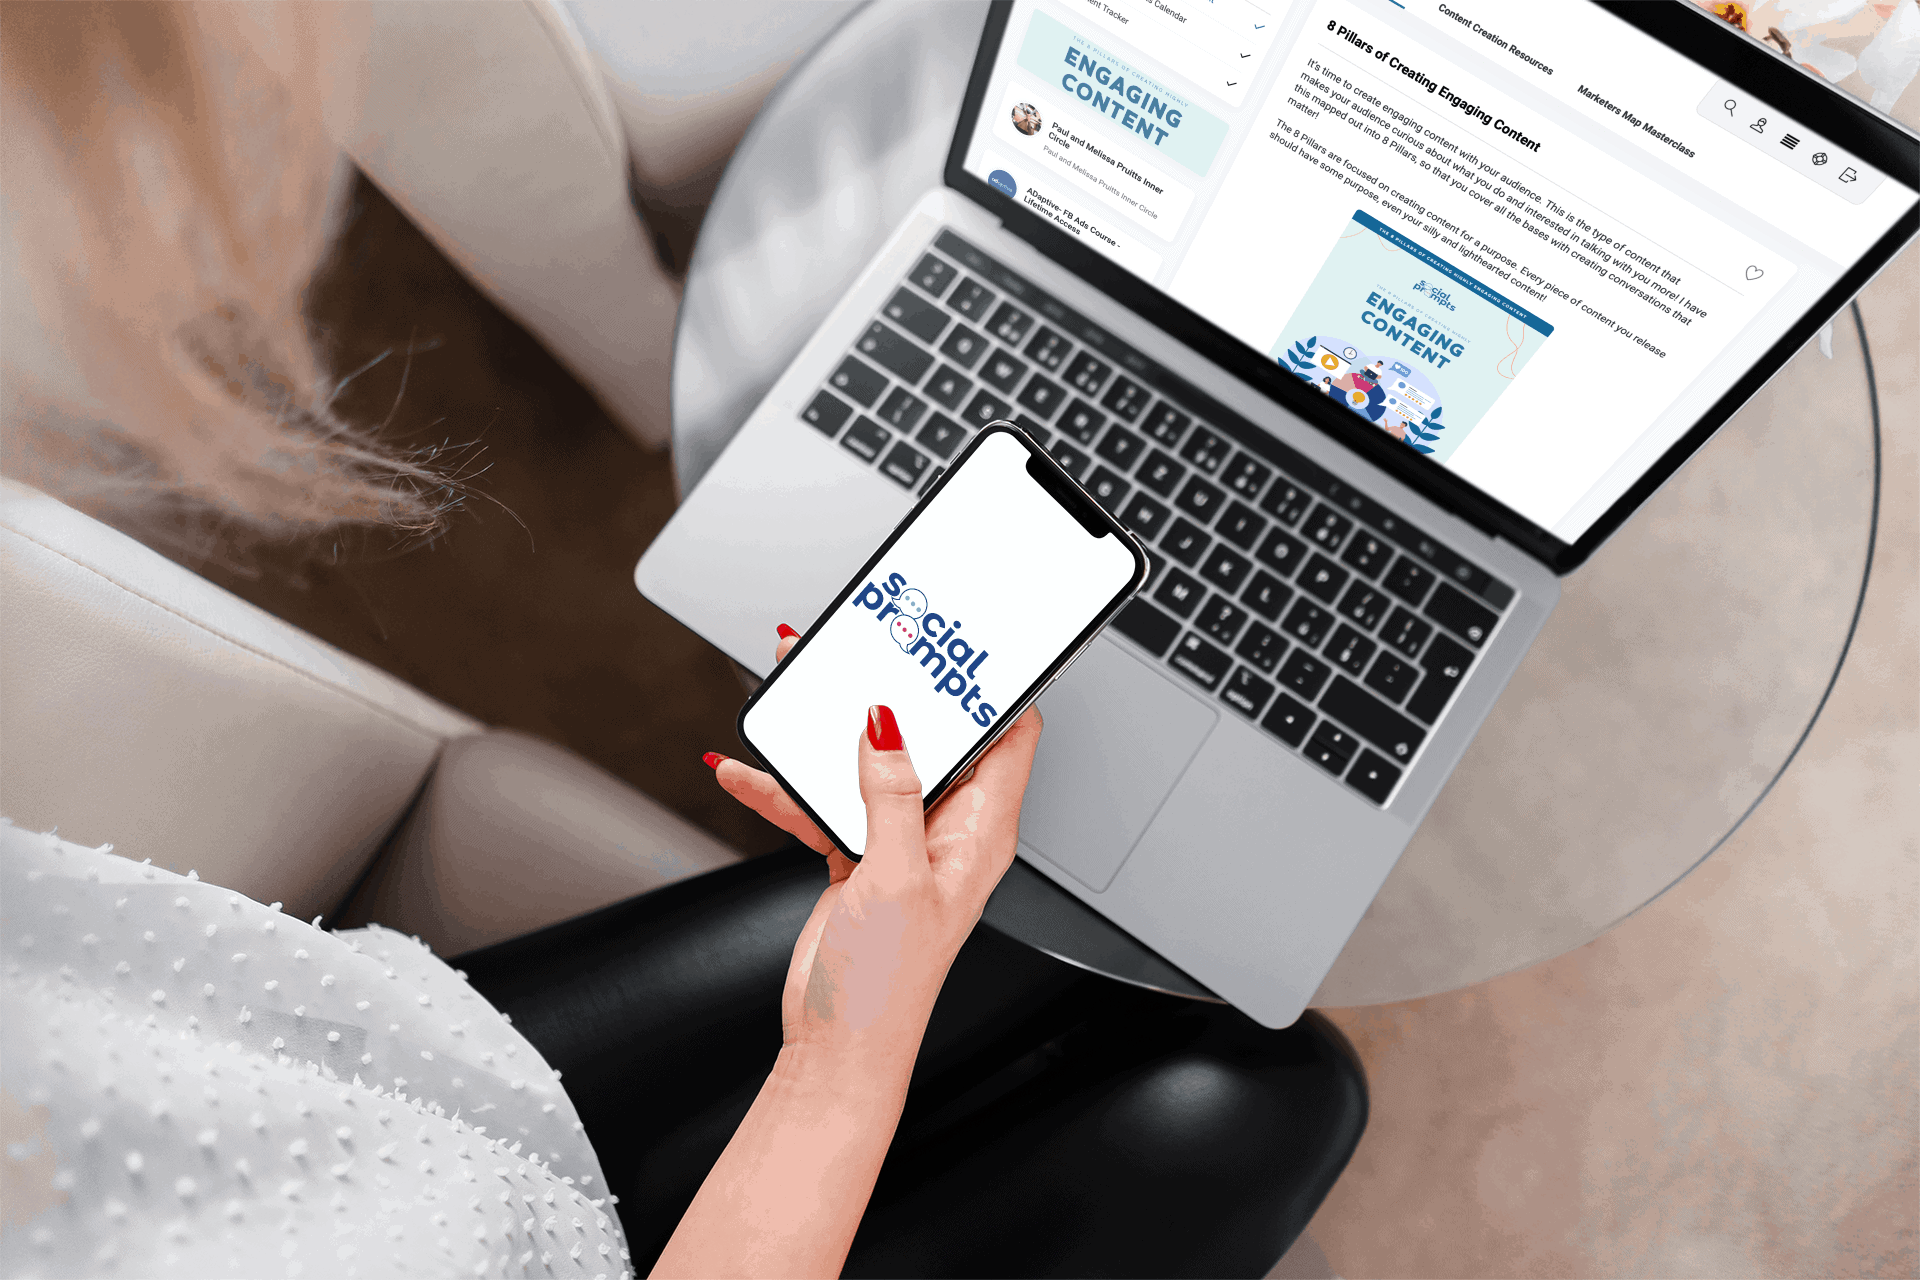 mockup-of-a-woman-using-an-iphone-11-pro-and-a-macbook-3825-el1-2